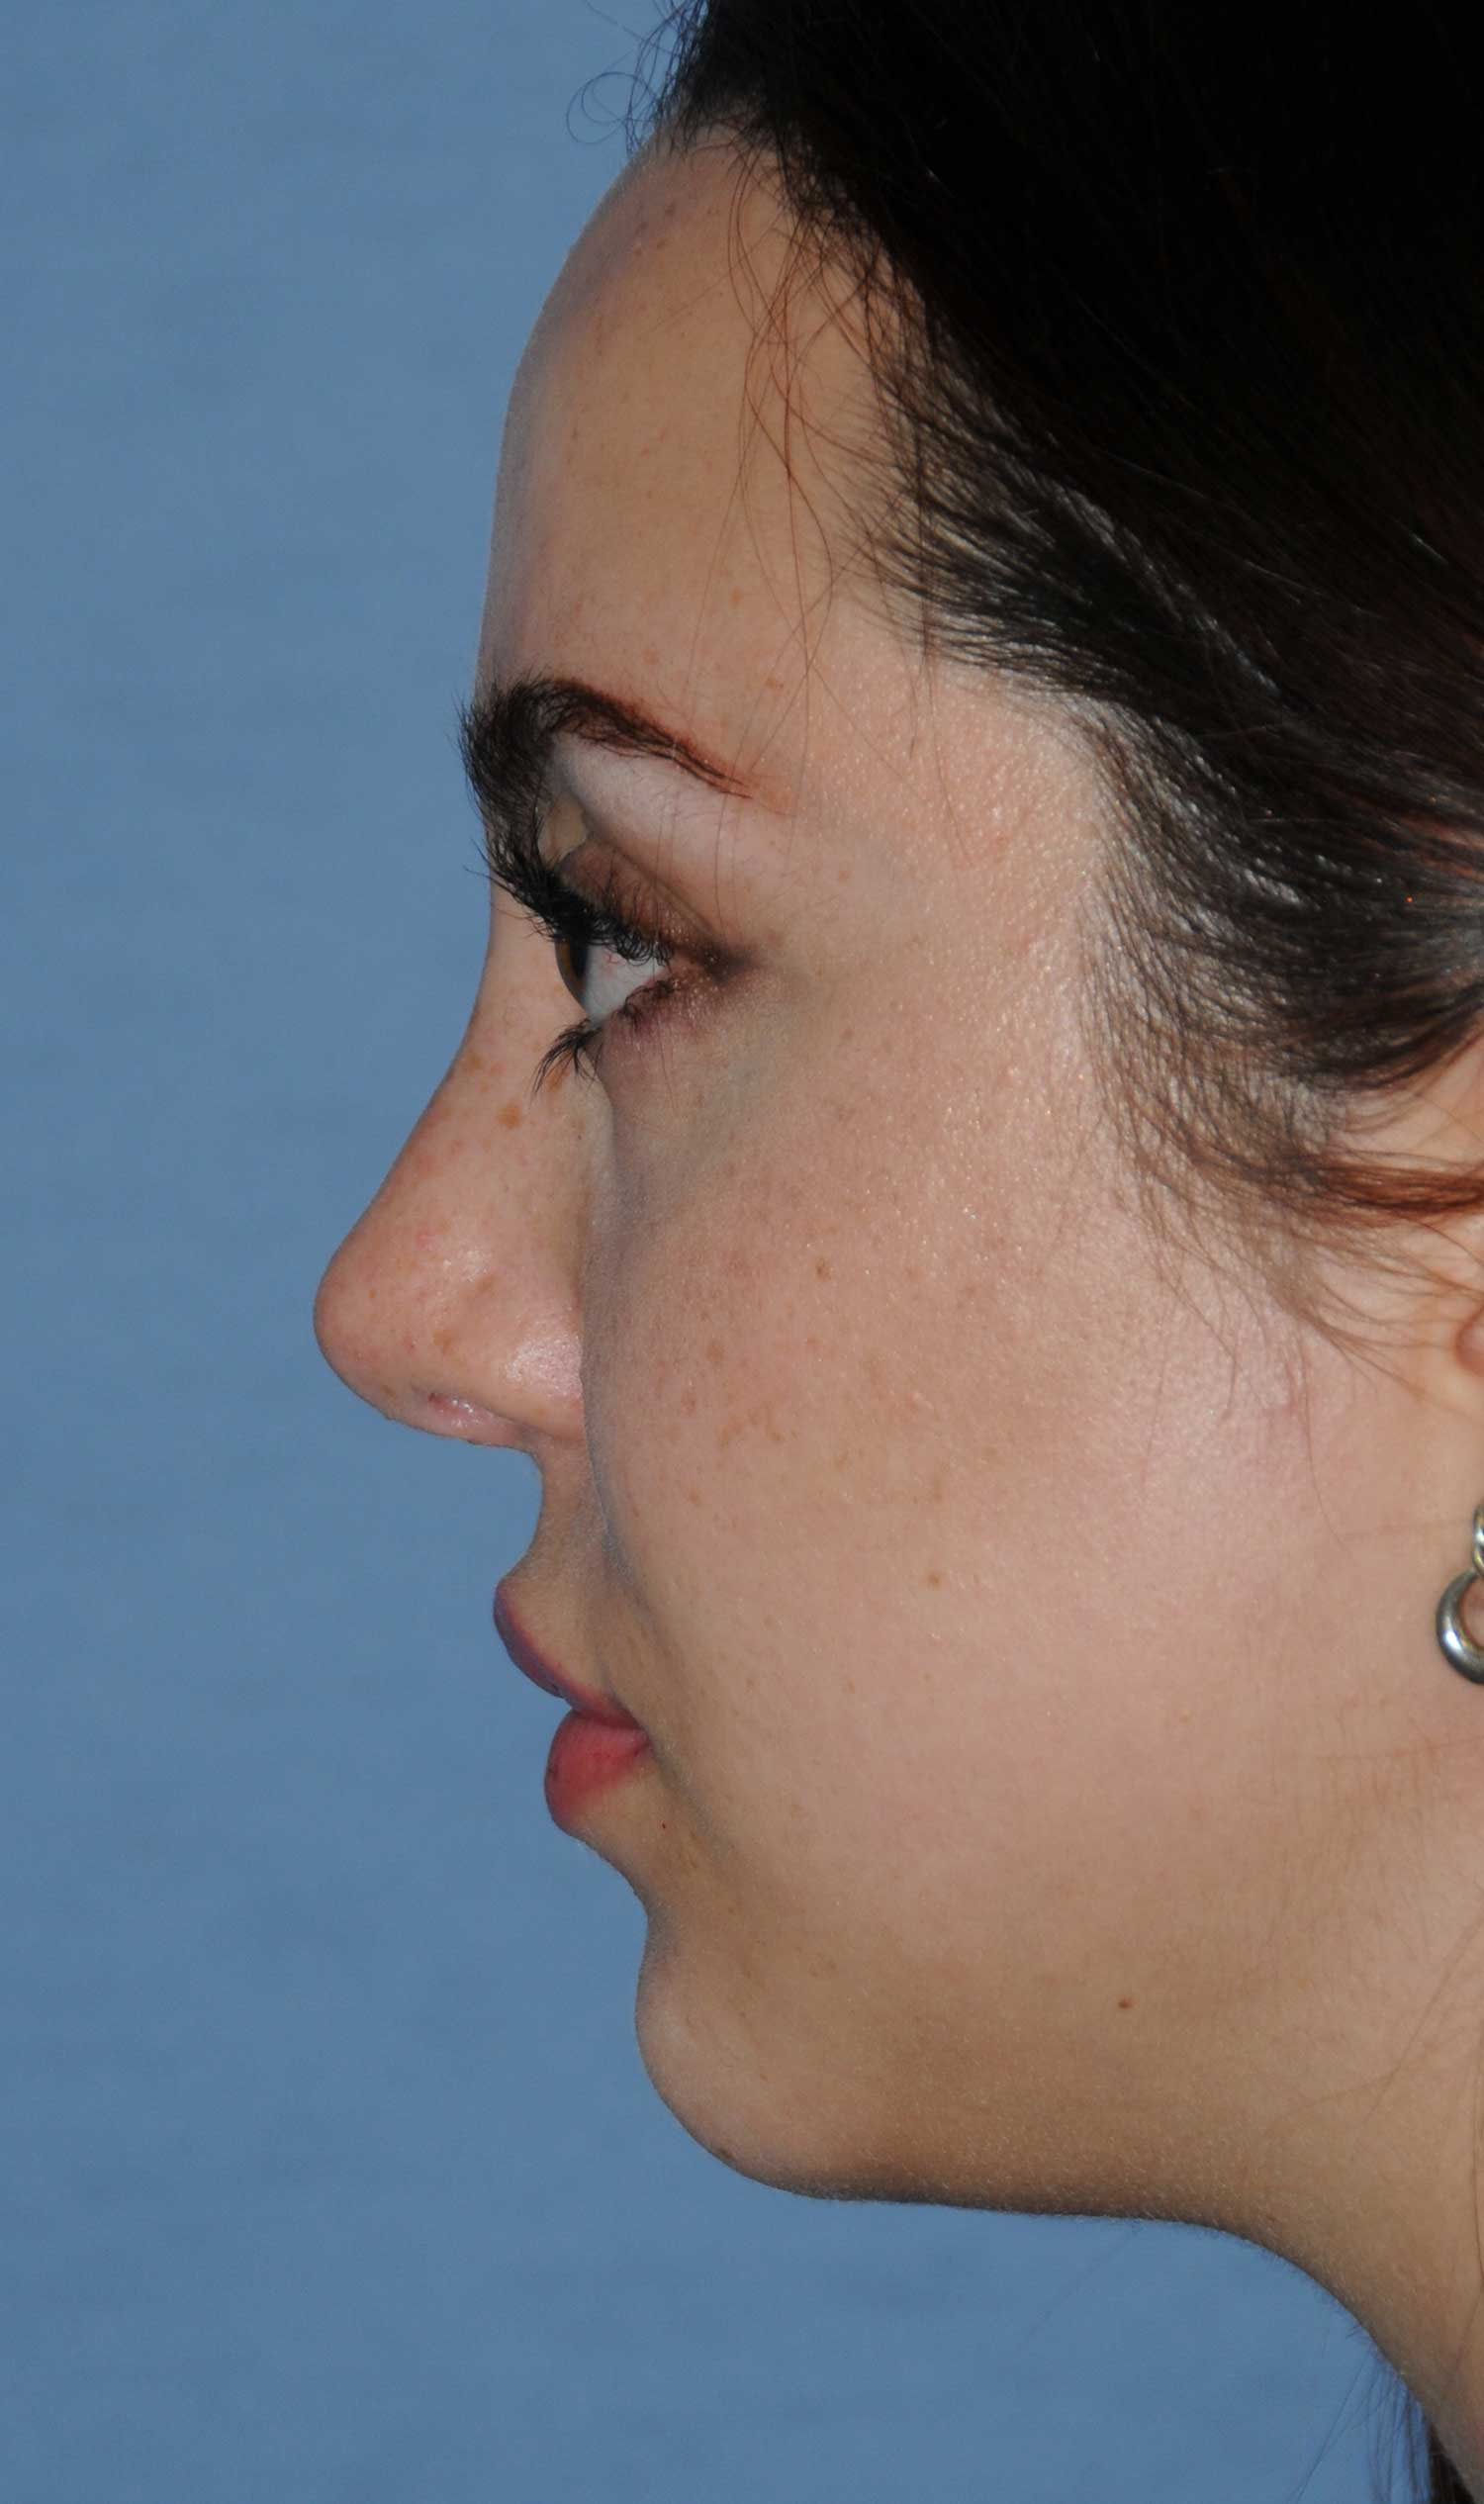 Rhinoplasty for a Bulbous Nasal Tip, Prominent Nasal Bridge, Short Nose / Columella and Lip Fat Transfer for Small Thin Lateral Upper Outer Lips After Left Profile View